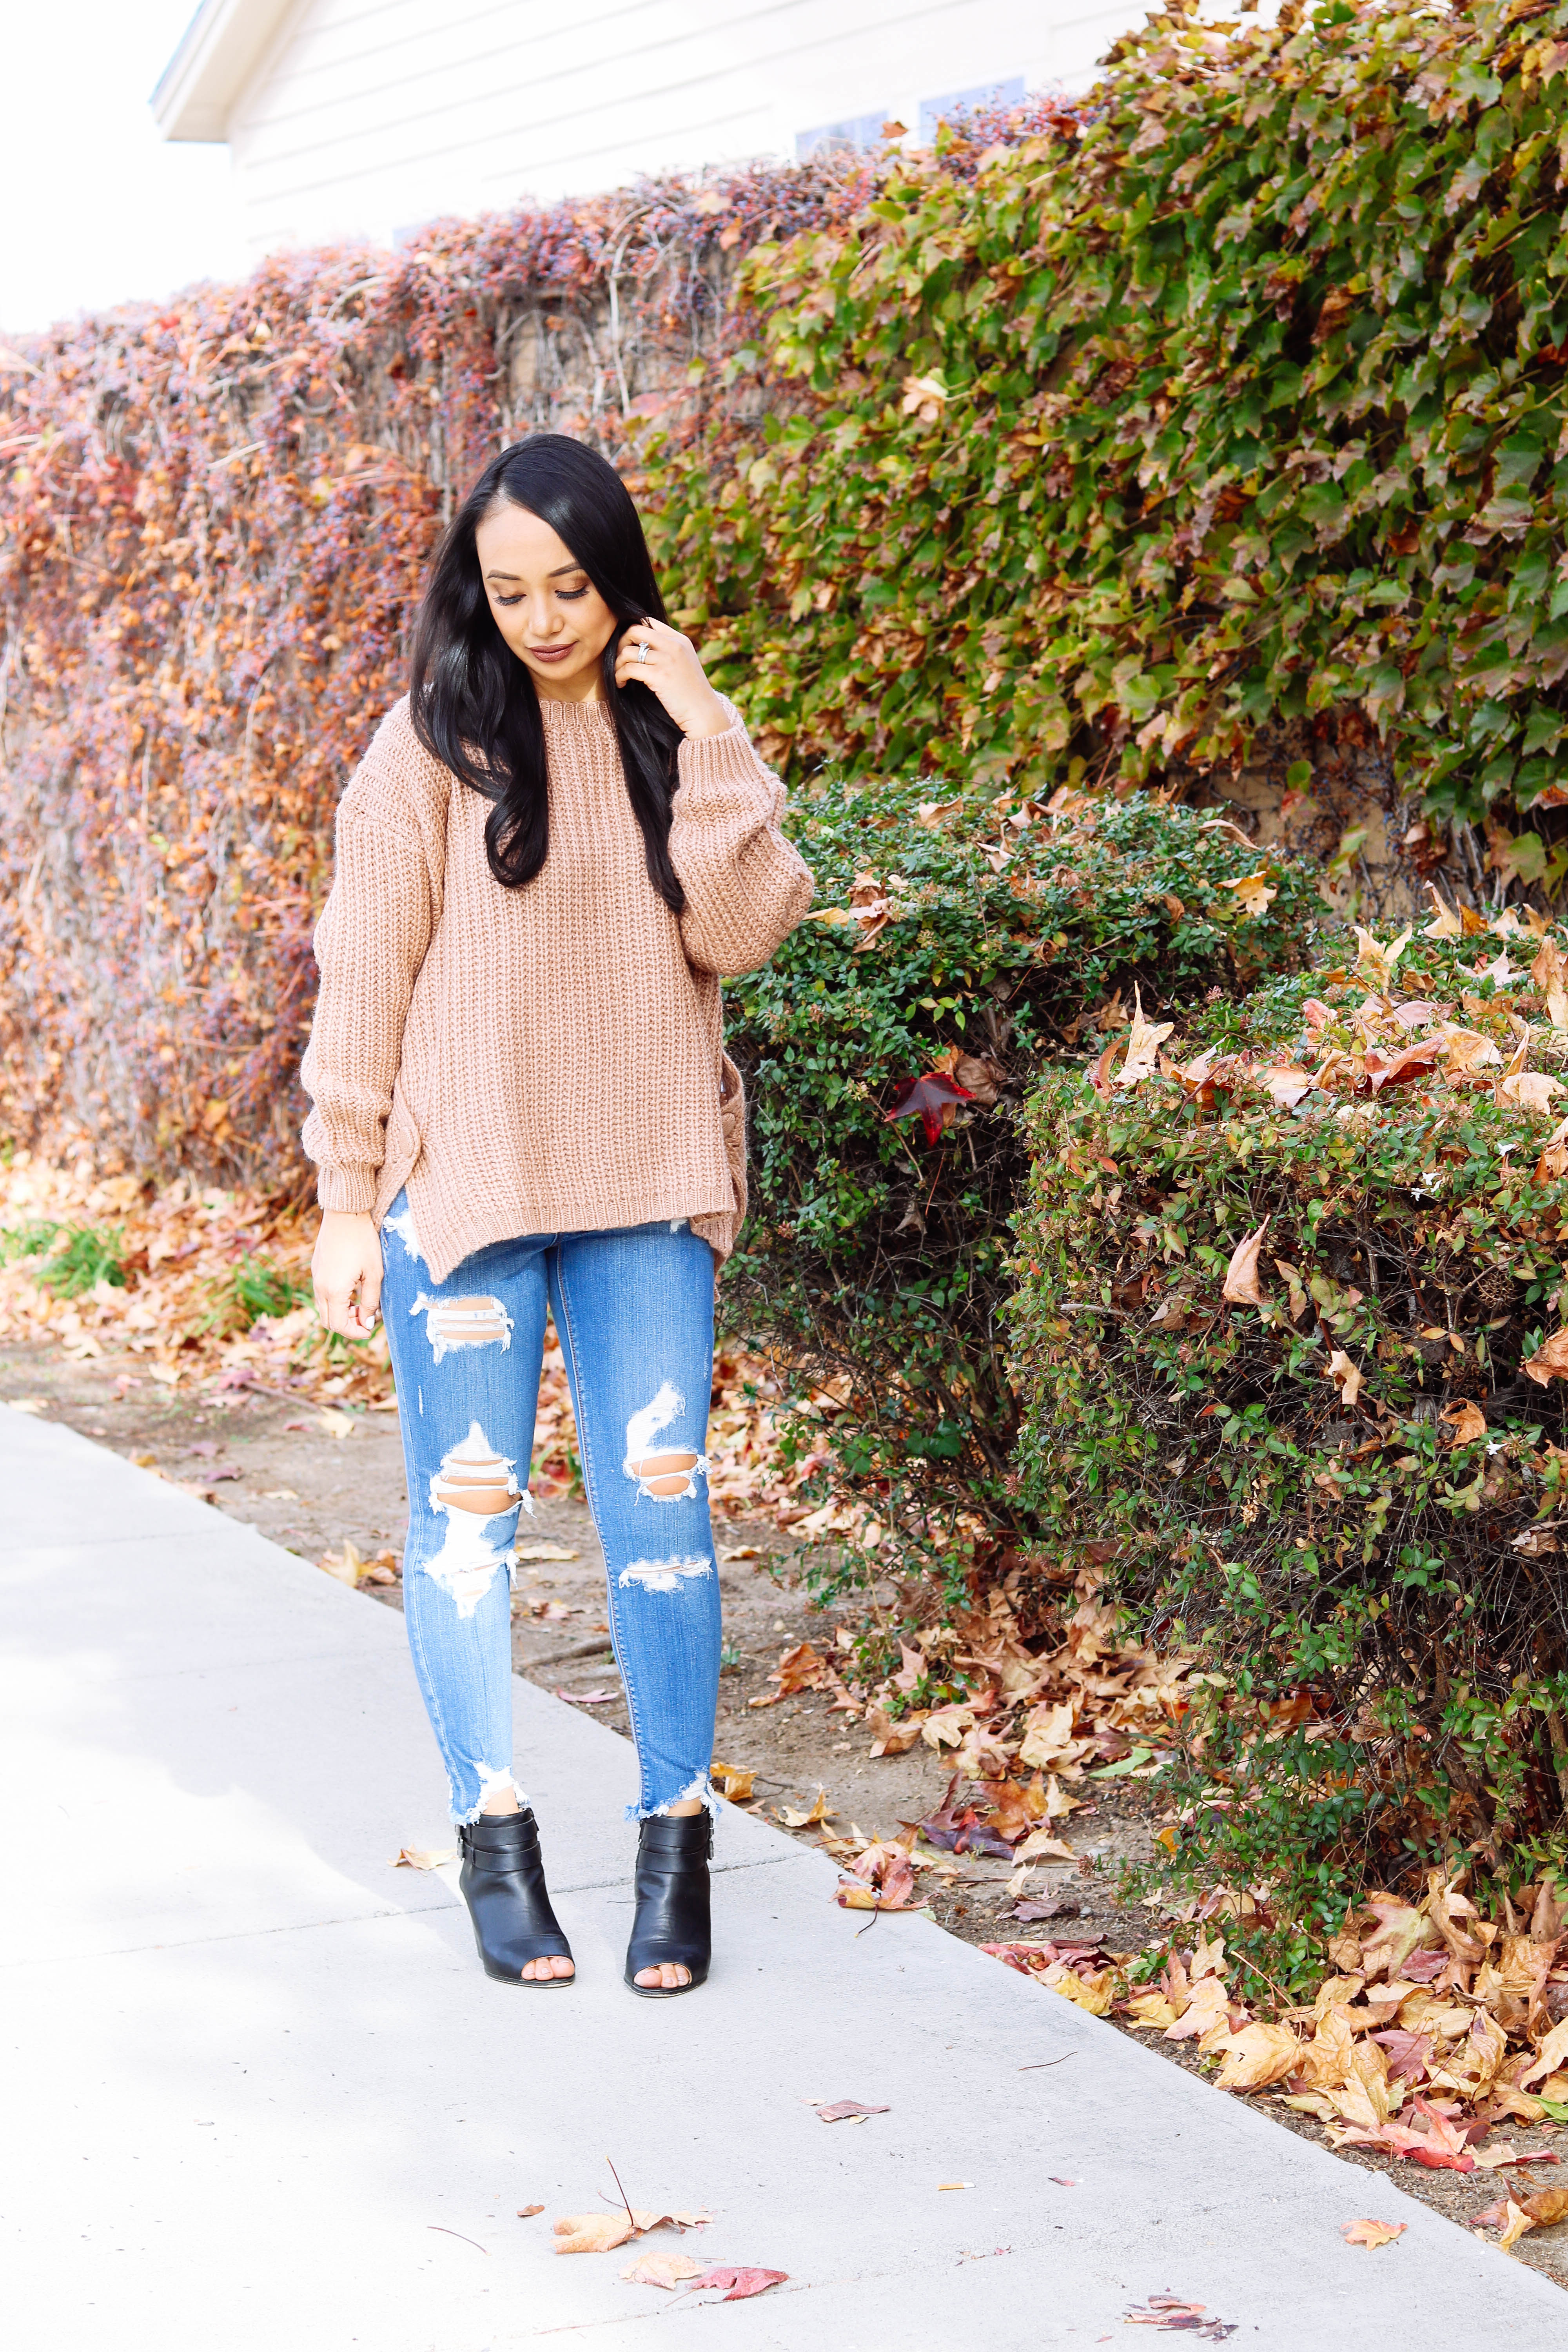 3 Looks From Pinkblush